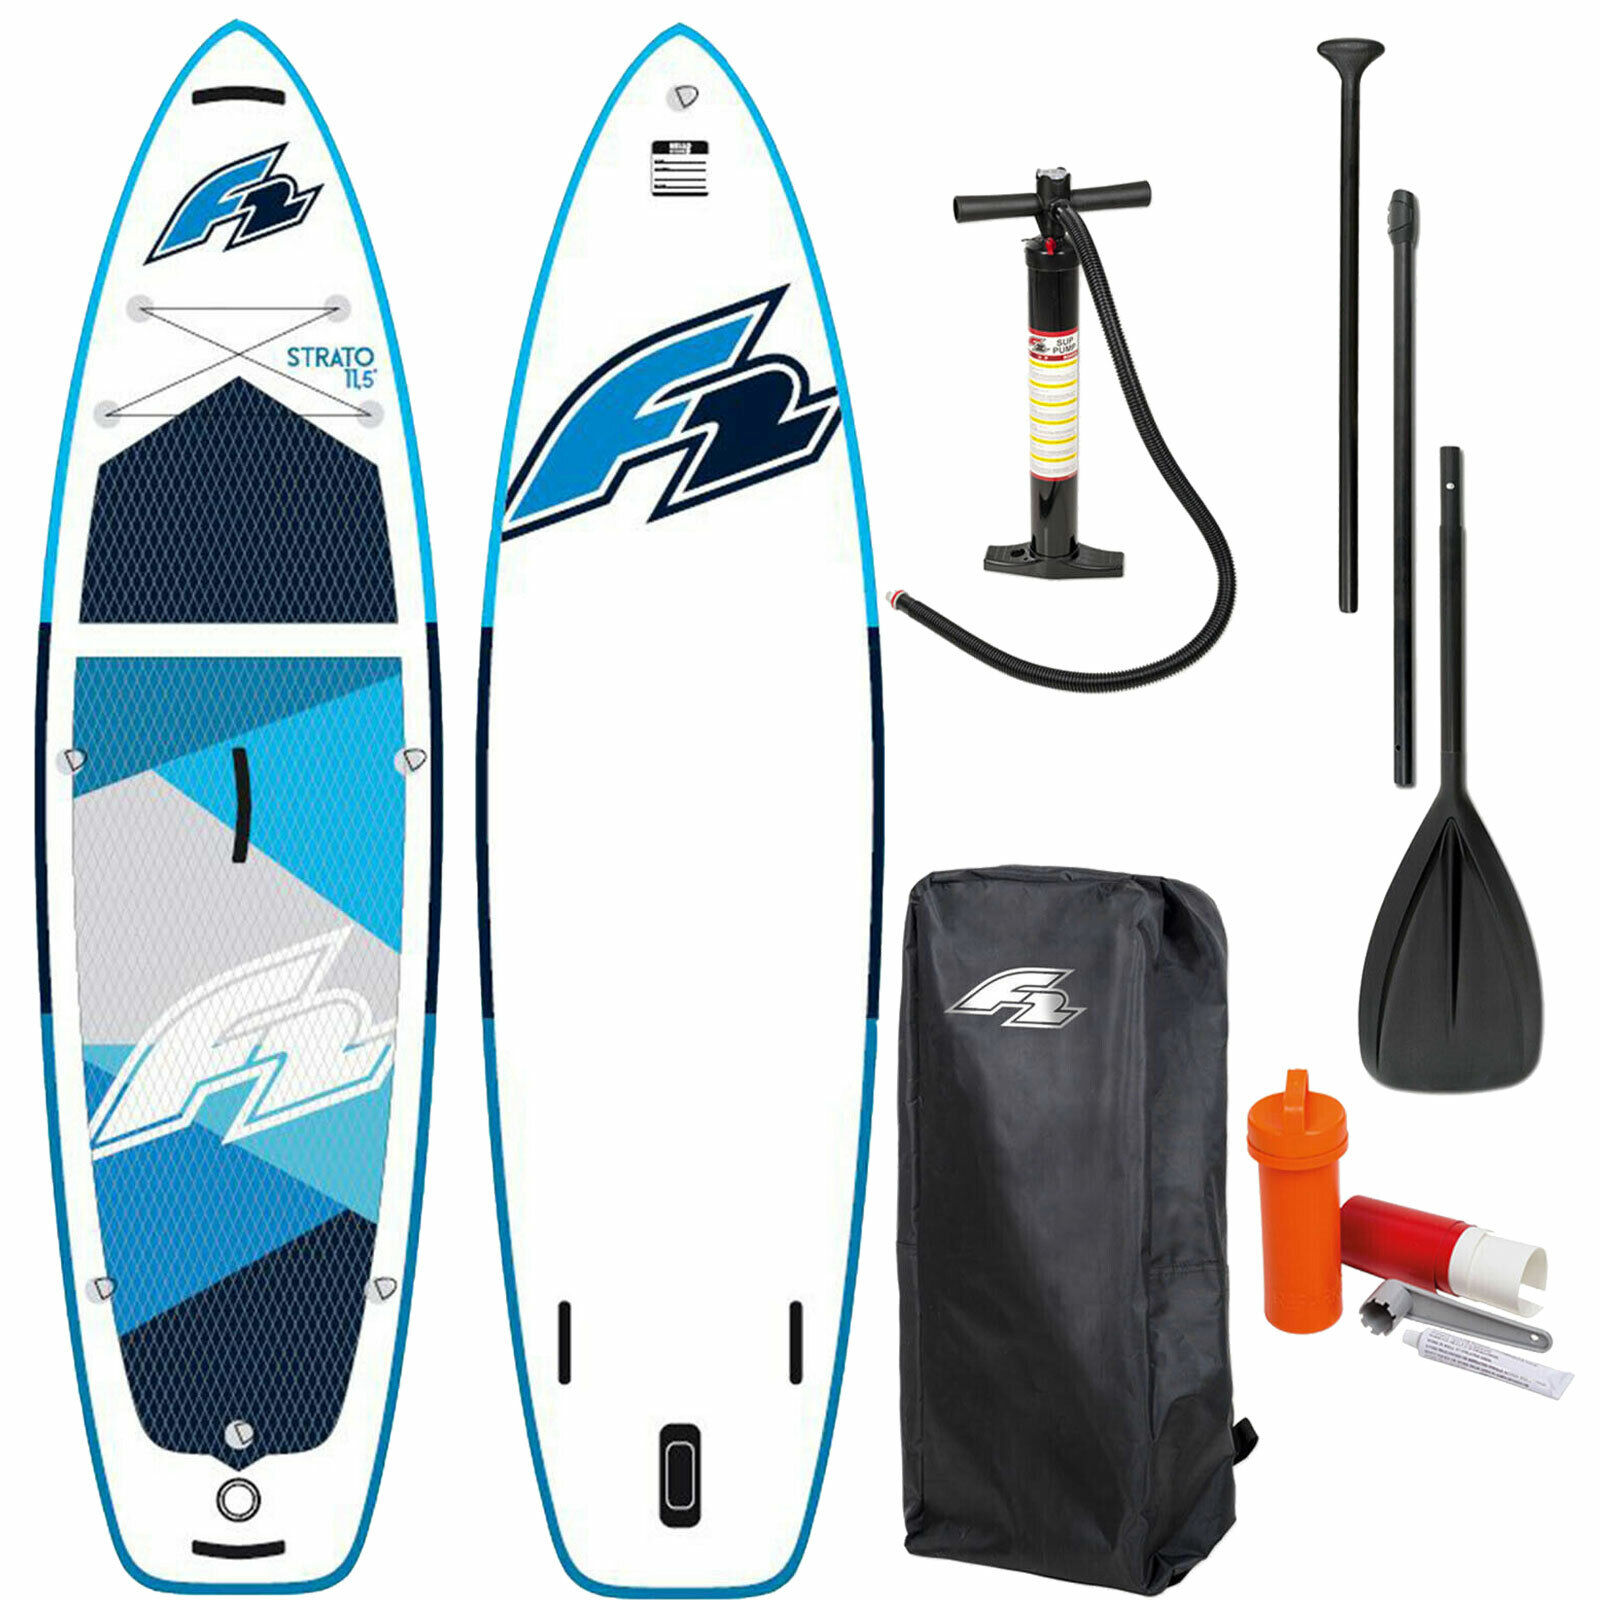 F2 Inflatable Strato SUP I-SUP Stand Up Paddle Paddelboard Paddleboard Board NEU